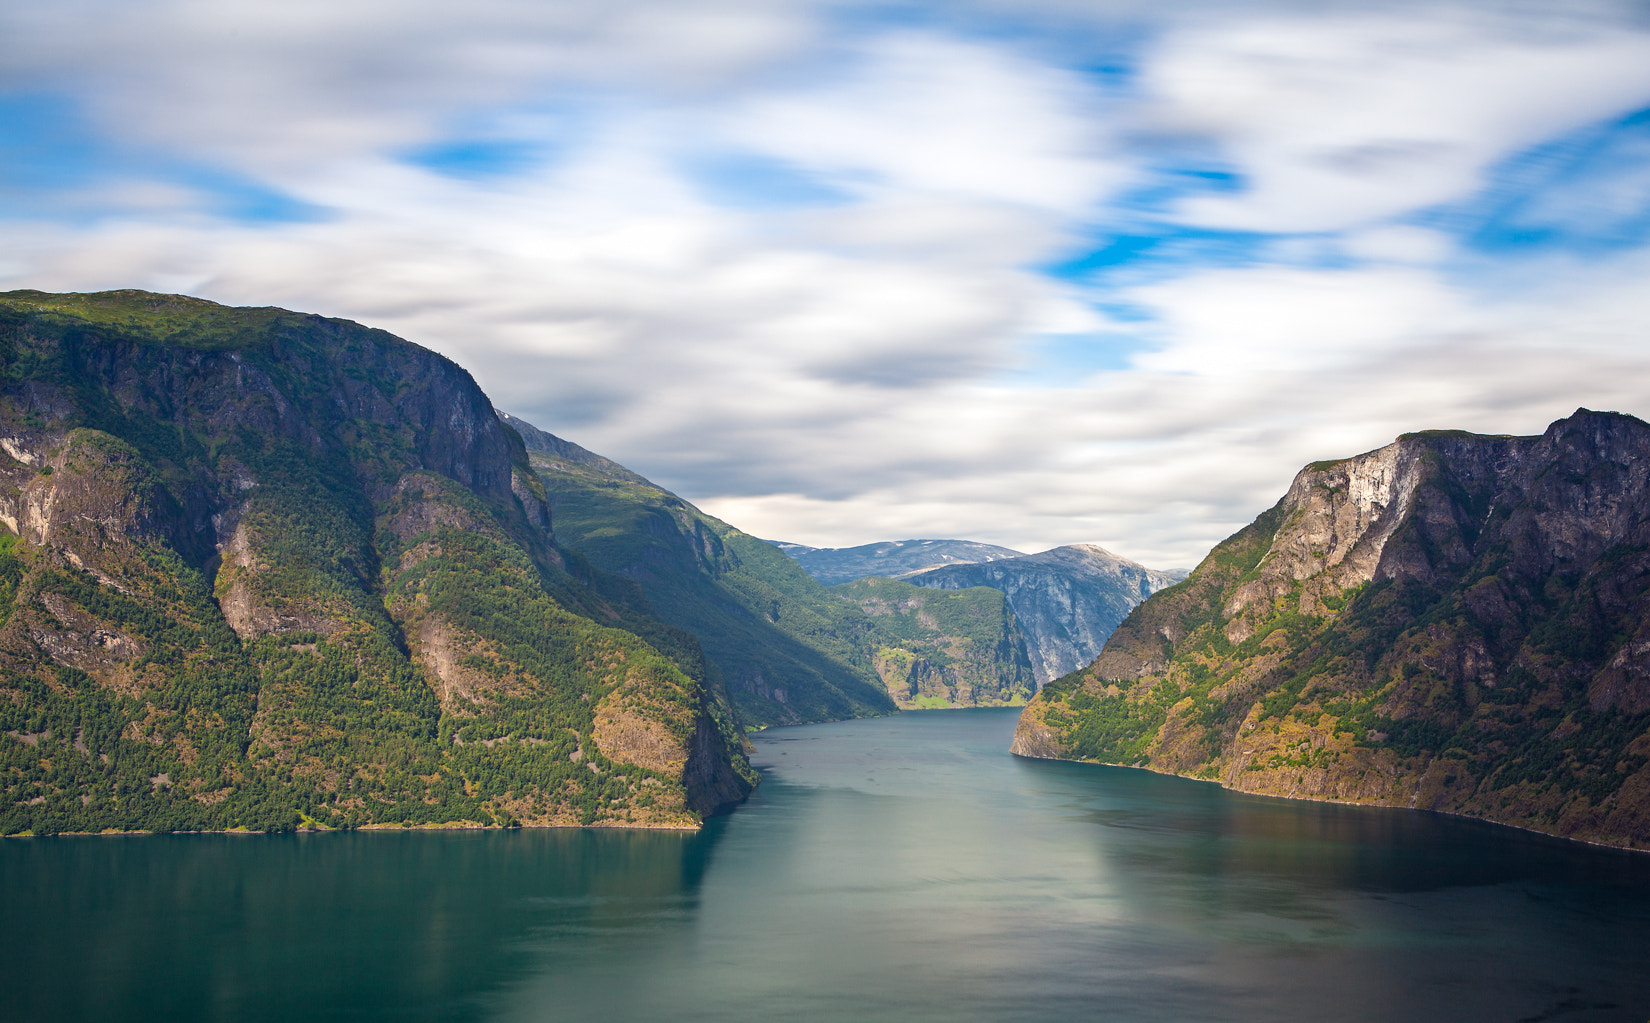 Photograph Fjord by Christian Fischer on 500px